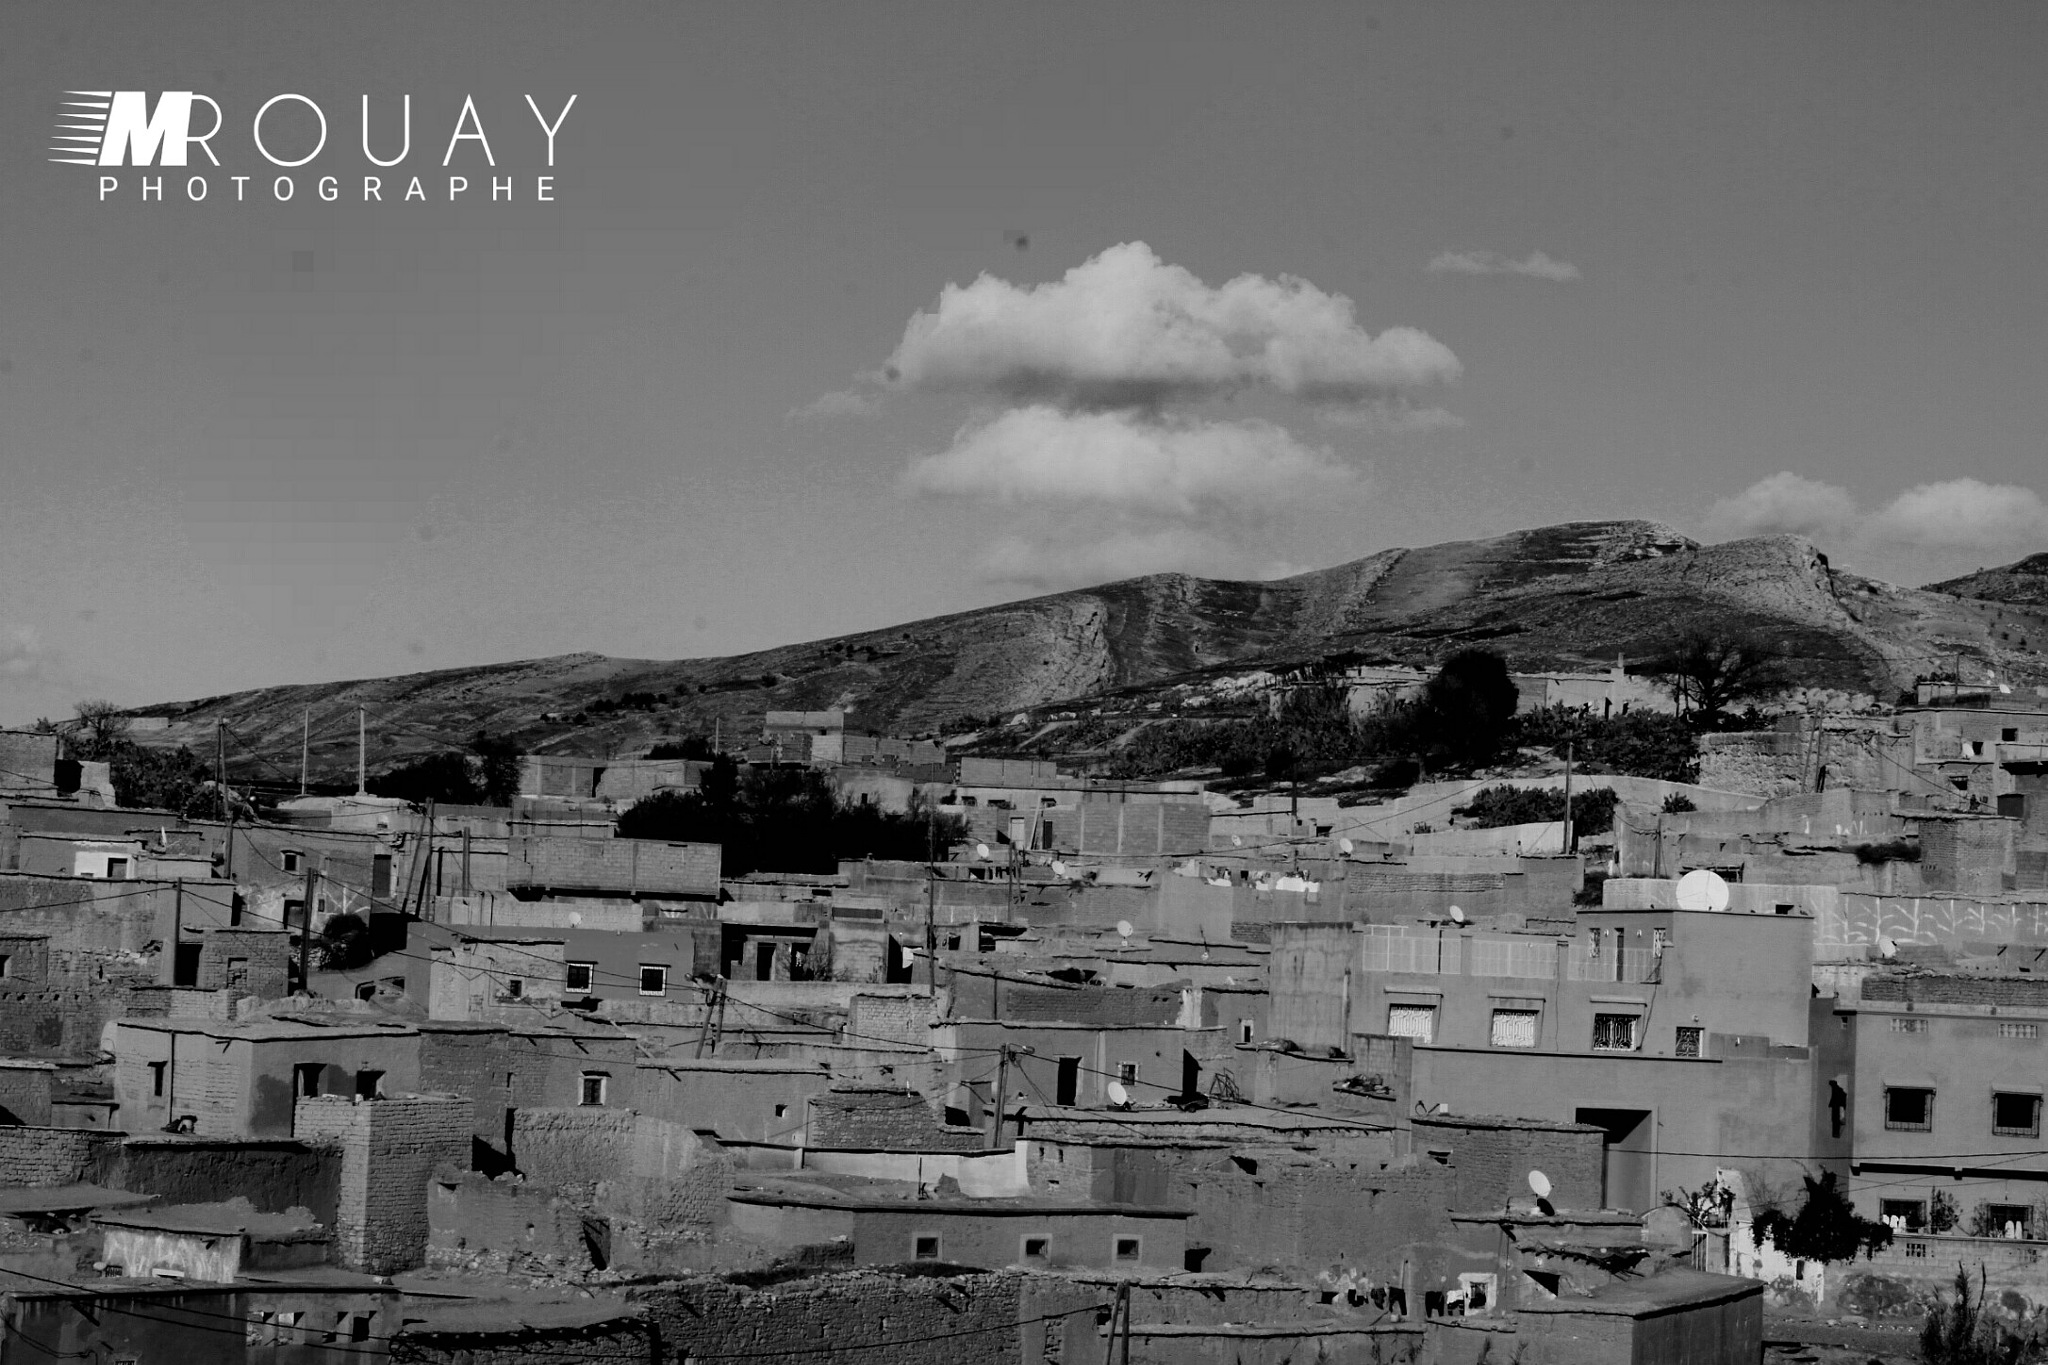 Untitled by MoHaMeD RoUaY